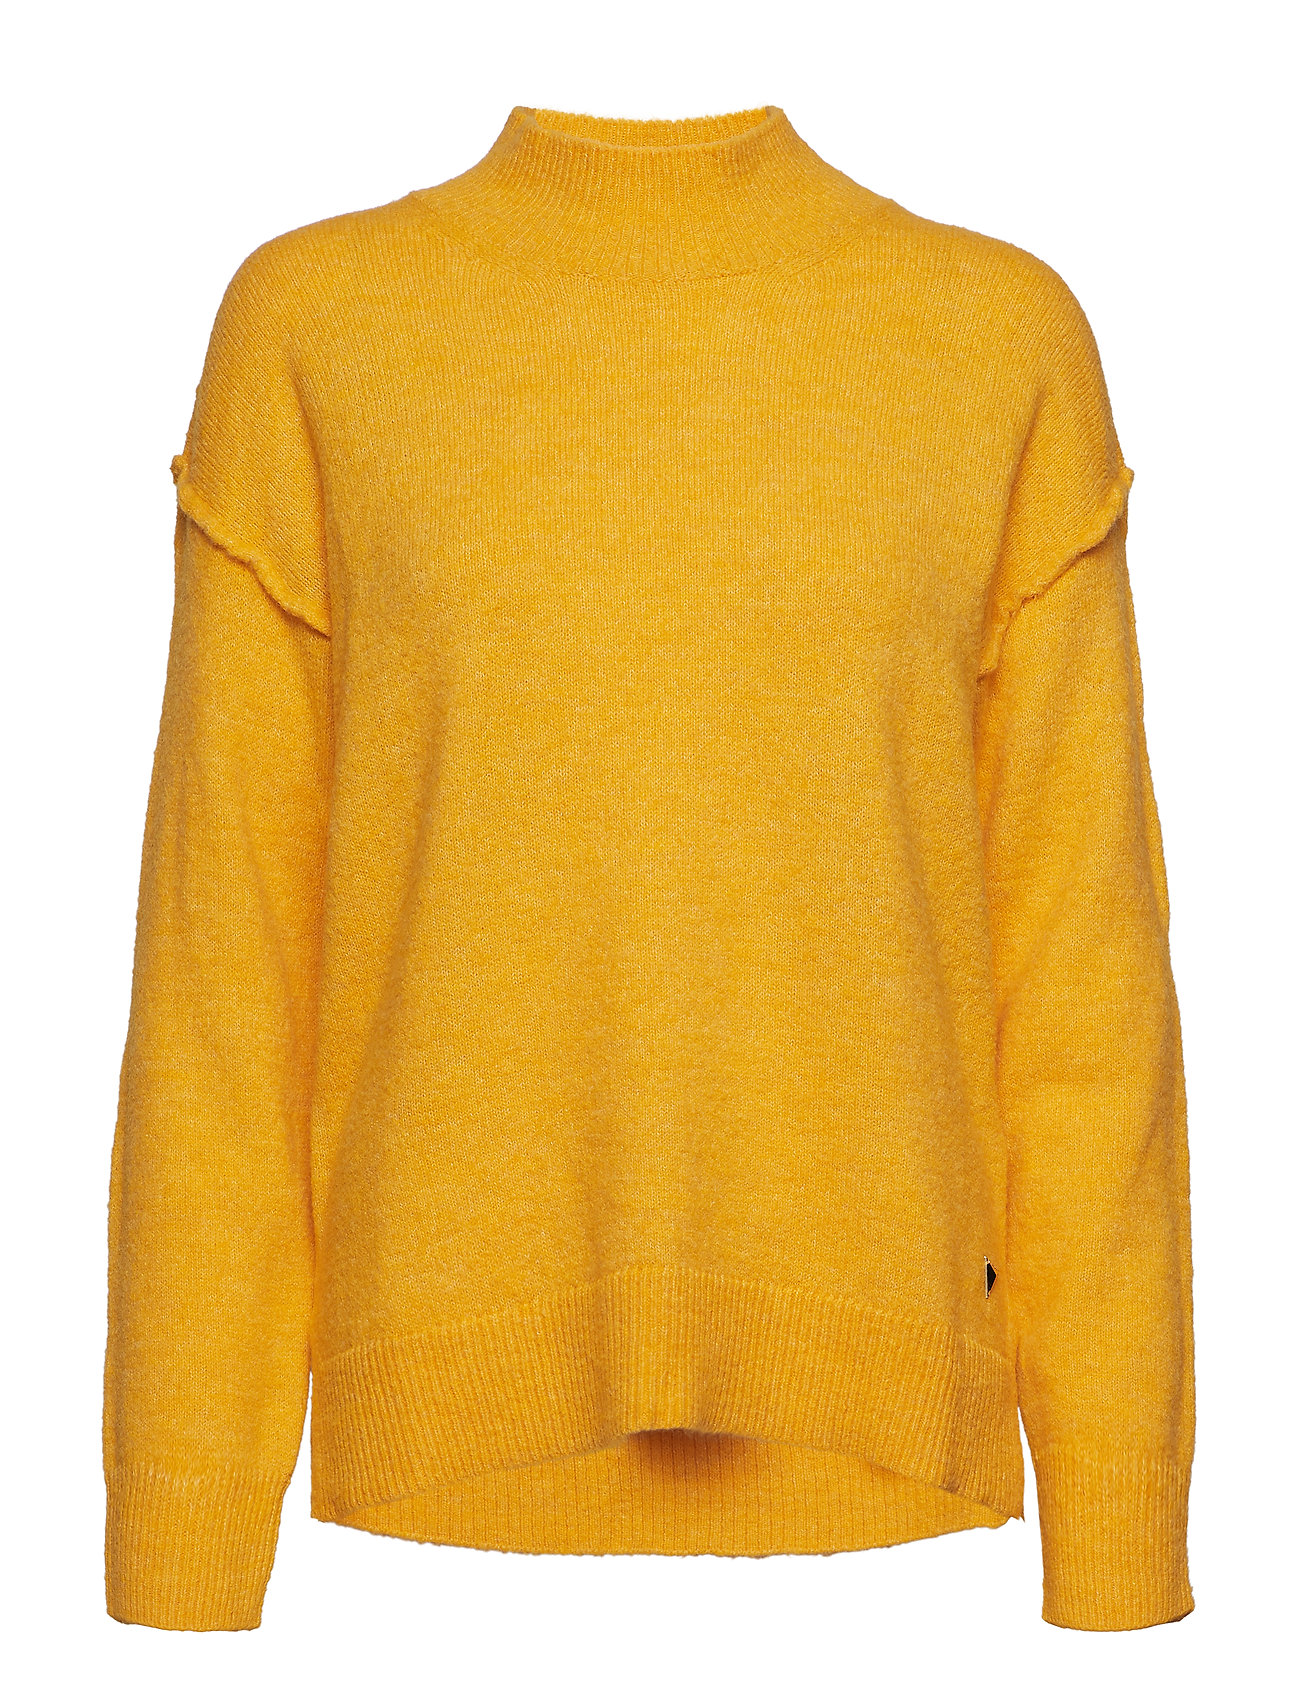 GUESS Ls Tn Laura Sweater Strickpullover Gelb GUESS JEANS